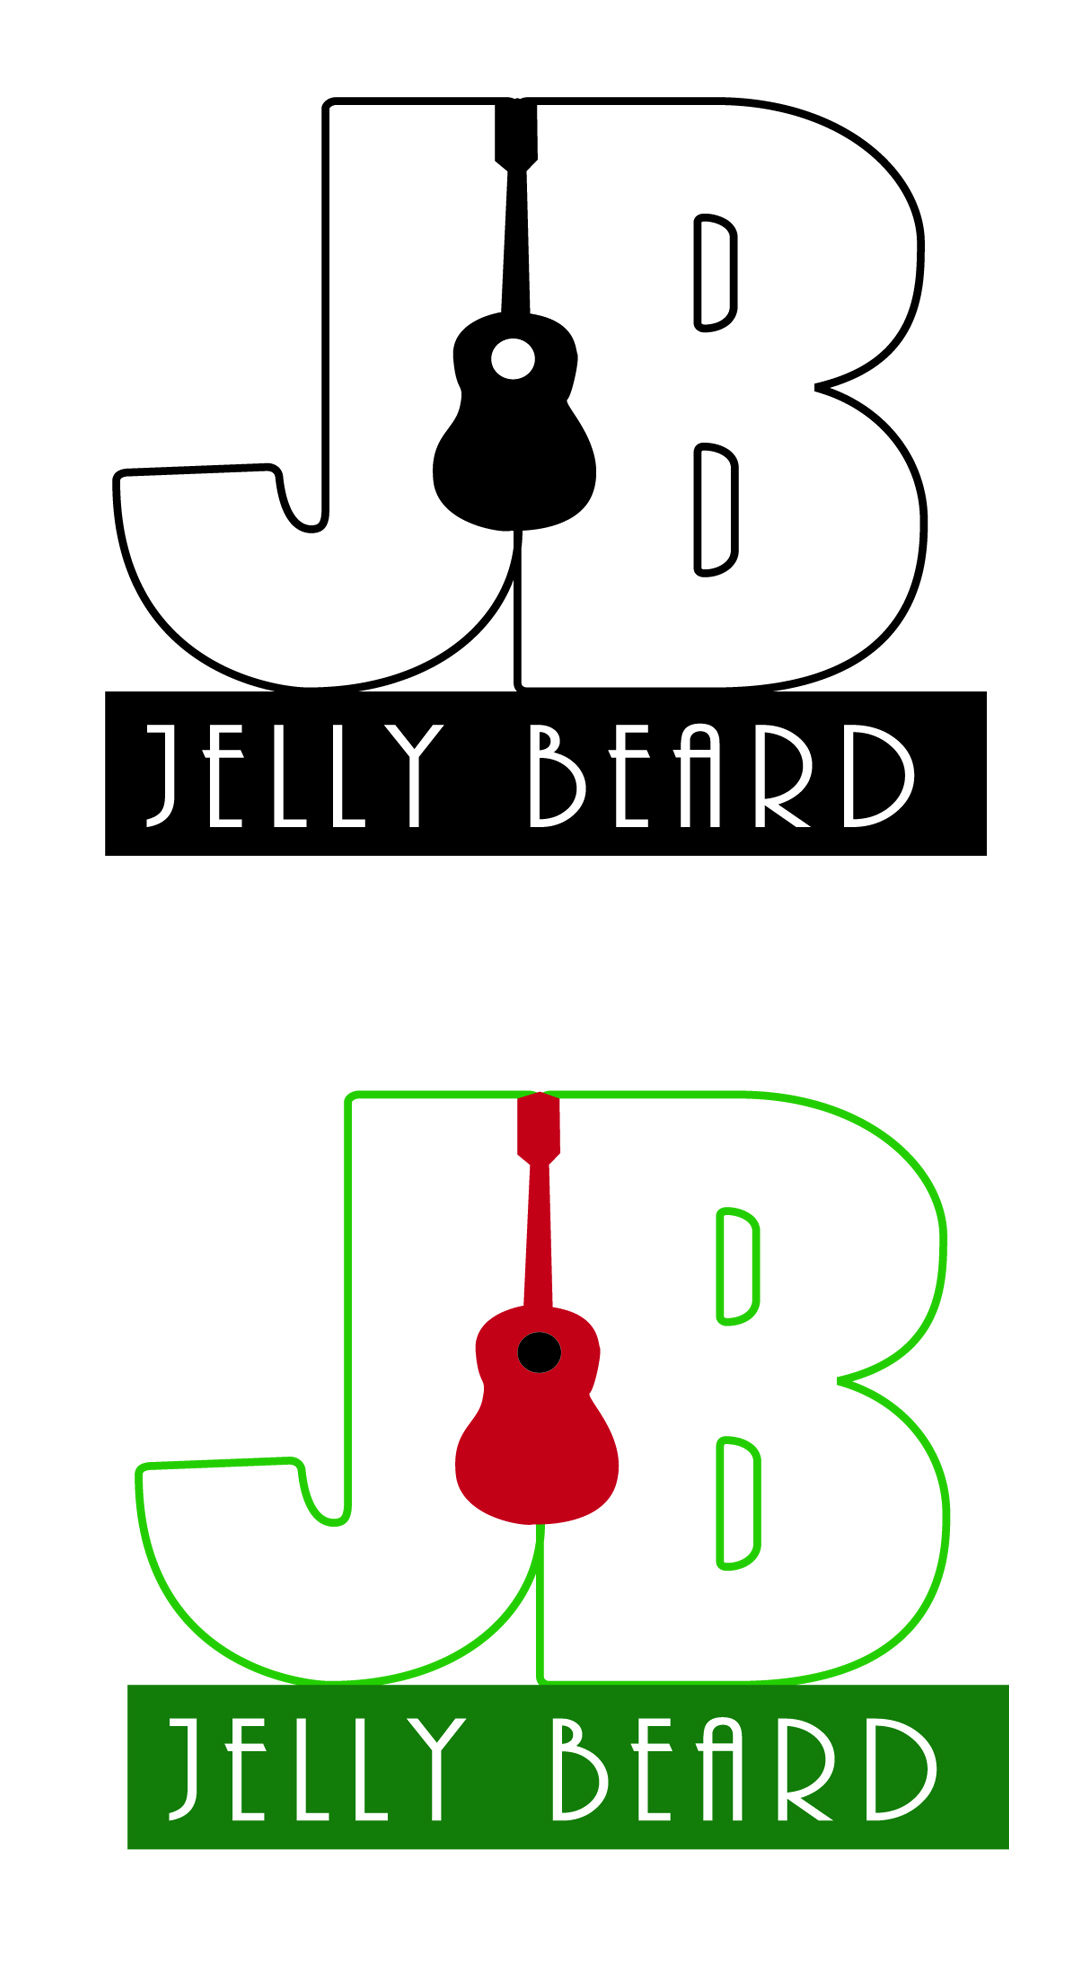 Logo Design by V Anil Yadavv - Entry No. 58 in the Logo Design Contest jellybeard Logo Design.